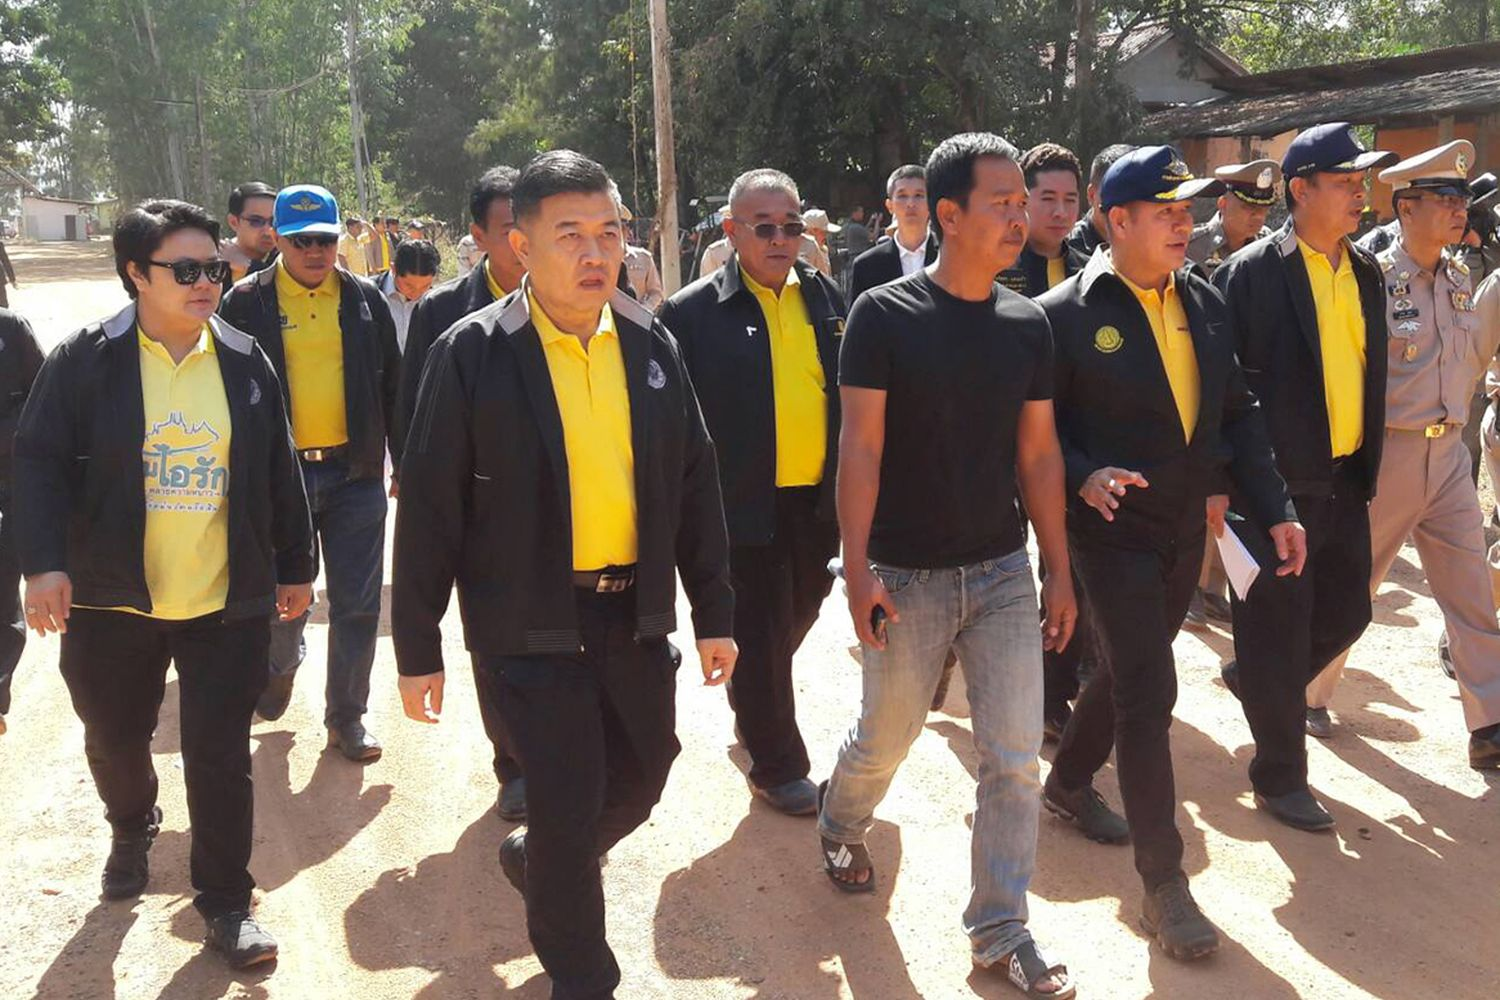 Deputy Agriculture Minister Thamanat Prompow (third from right) visits the chicken farm owned by Palang Pracharath MP Pareena Kraikupt on Saturday after she agreee to hand over the land to authorities. (Photo by Saichon Srinuanchan)